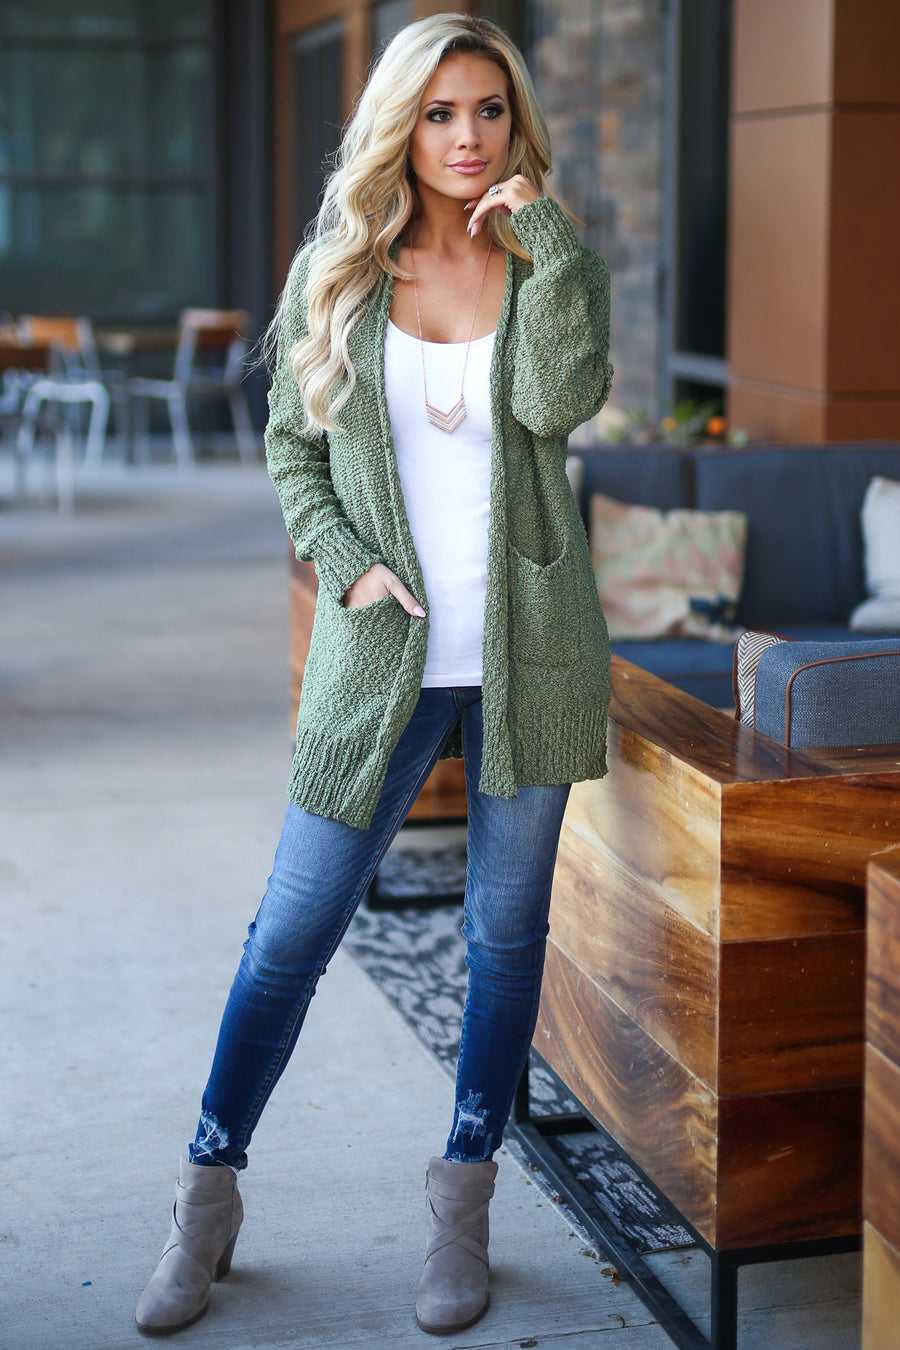 Time To Chill Knit Cardigan - Olive cozy knit open-front sweater, closet candy boutique 1